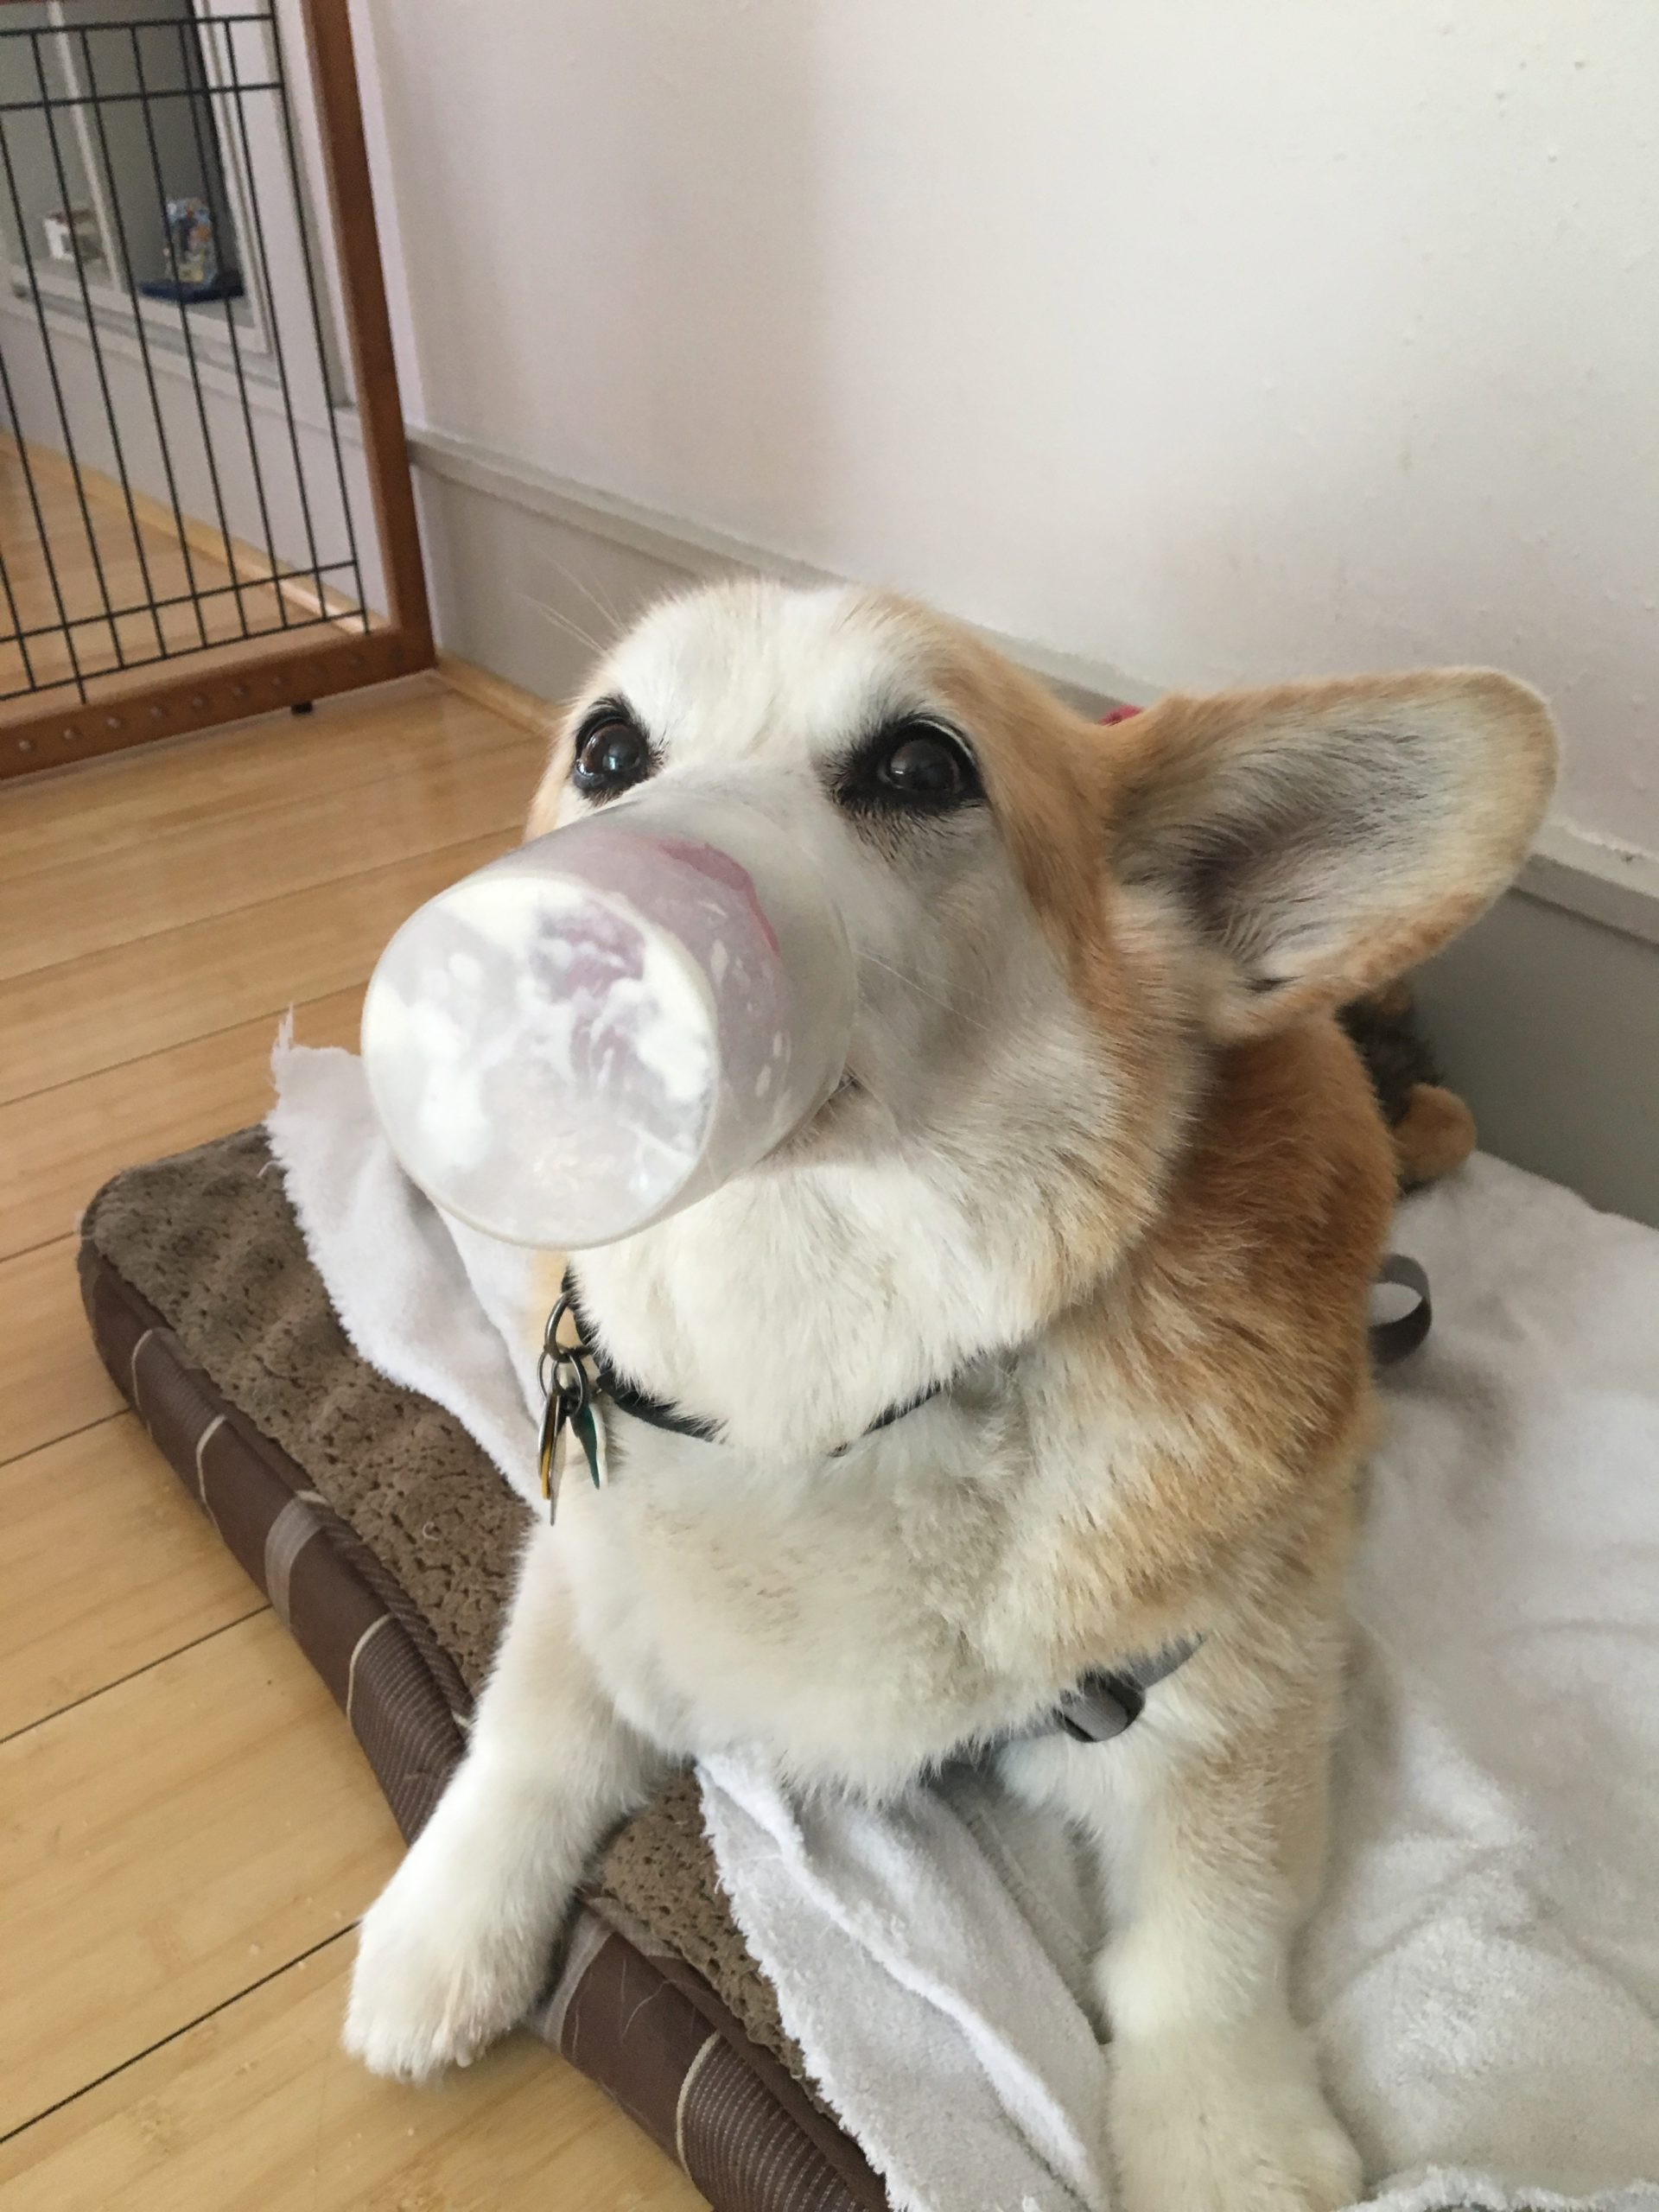 Pembroke Welsh Corgi With A Cup Stuck On His Nose